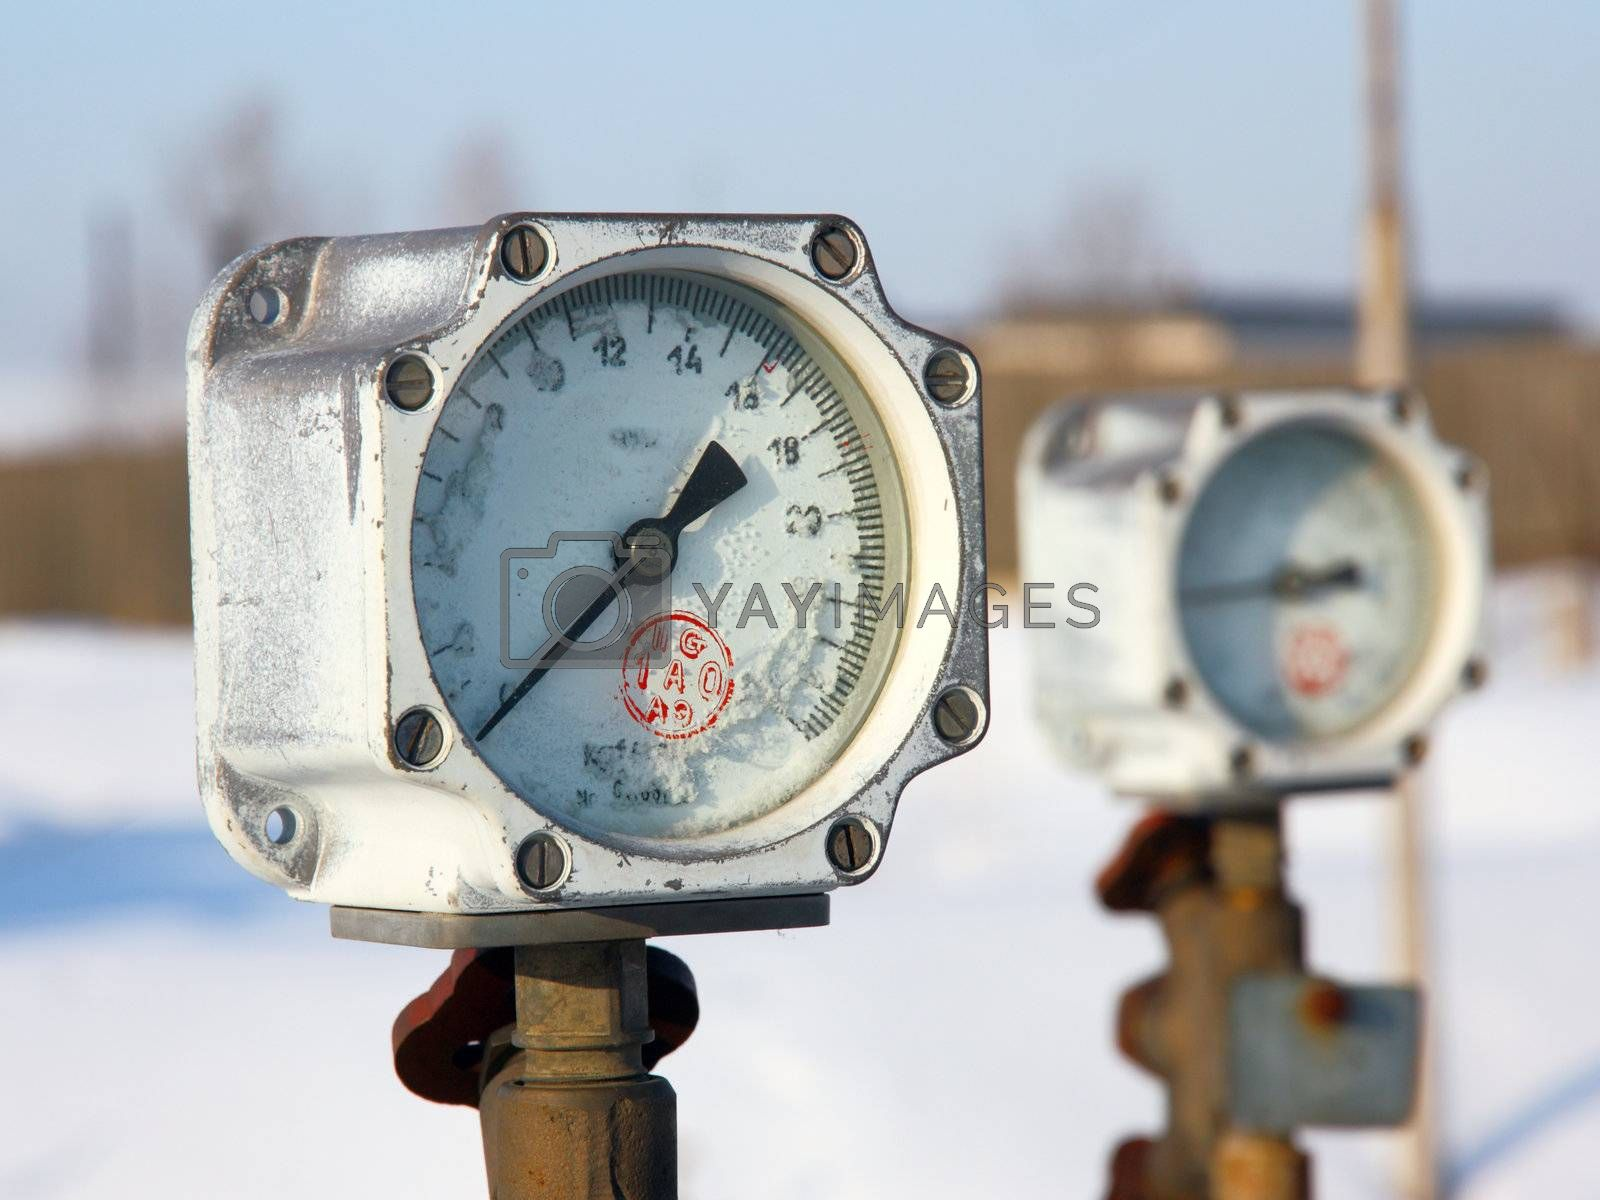 Old gas manometer in the winter in hoarfrost